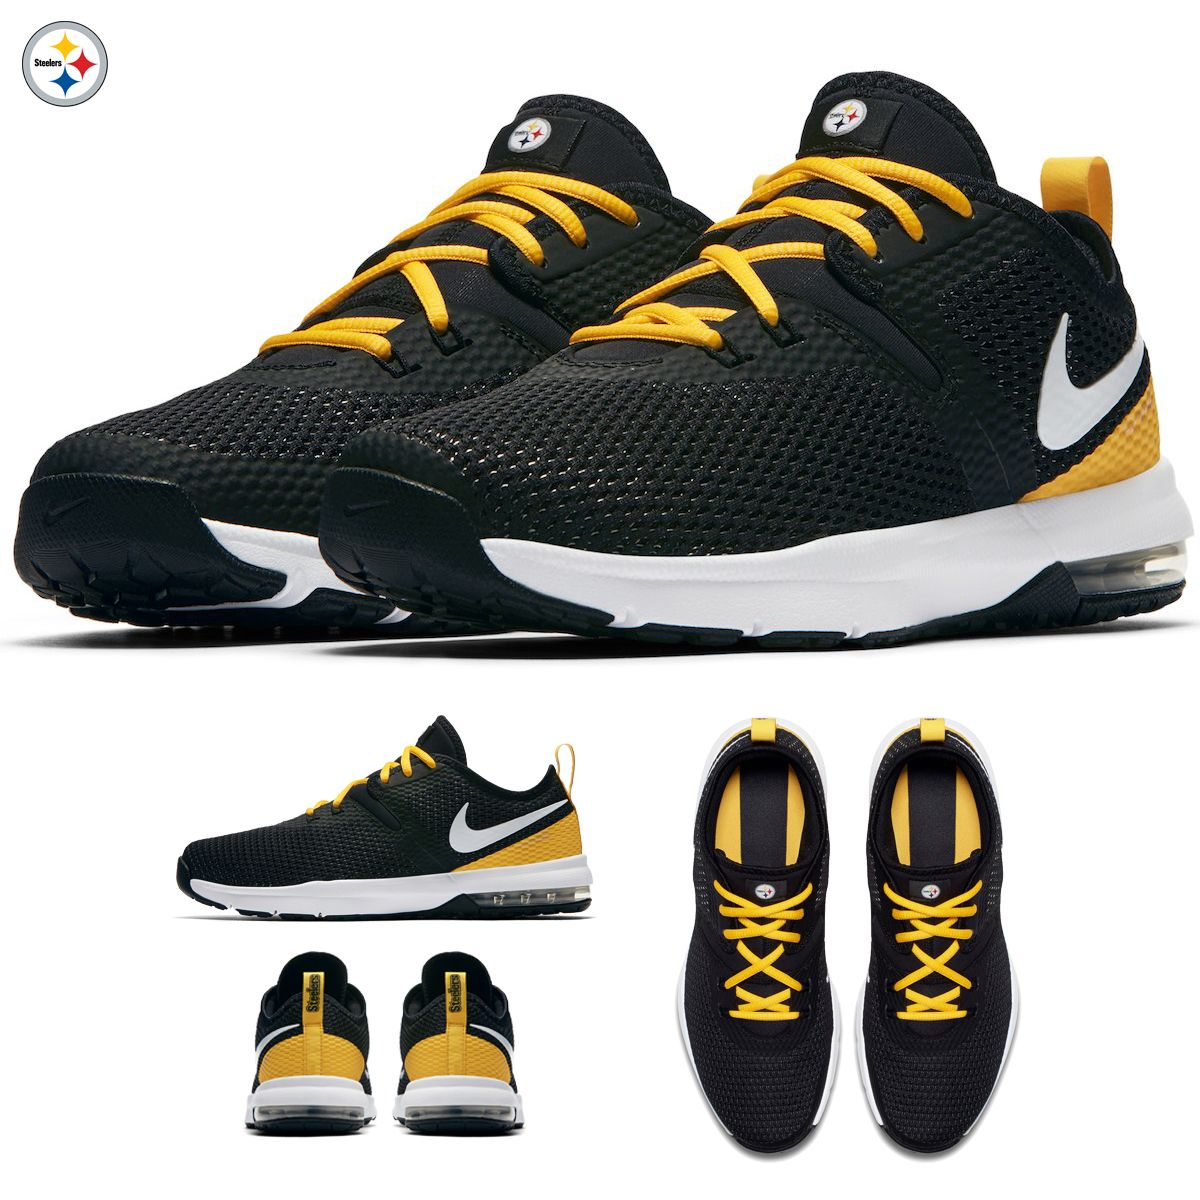 01d1d11813b Pittsburgh Steelers Nike Air Max Typha 2 Shoes NFL 2018 Limited Edition NWT  NEW HOT FROM THE OVEN!! The new NFL Nike Air Max Typha 2 collection!!